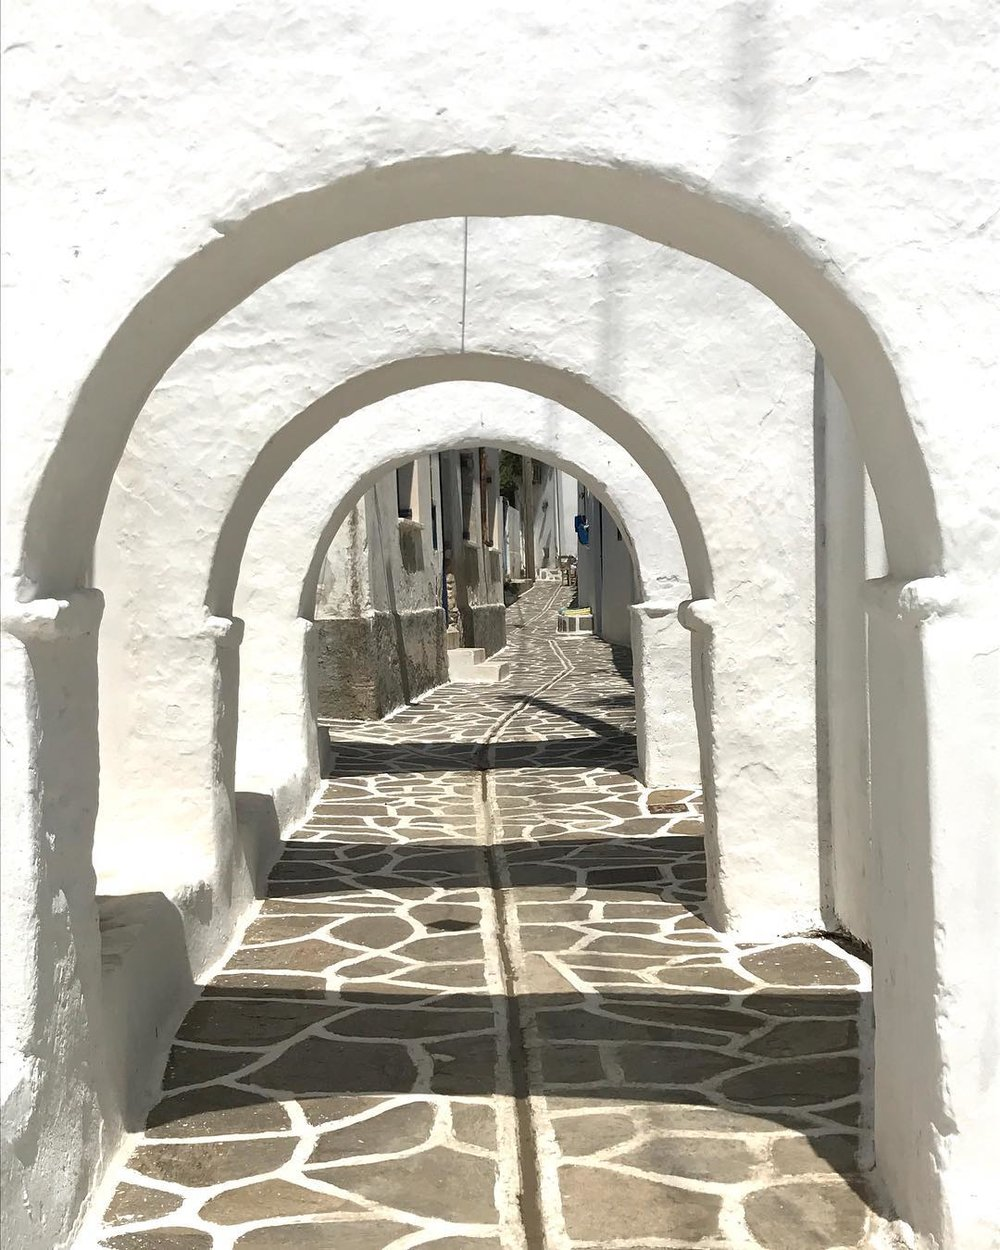 In cycladic architecture arches form covered areas in the public space.